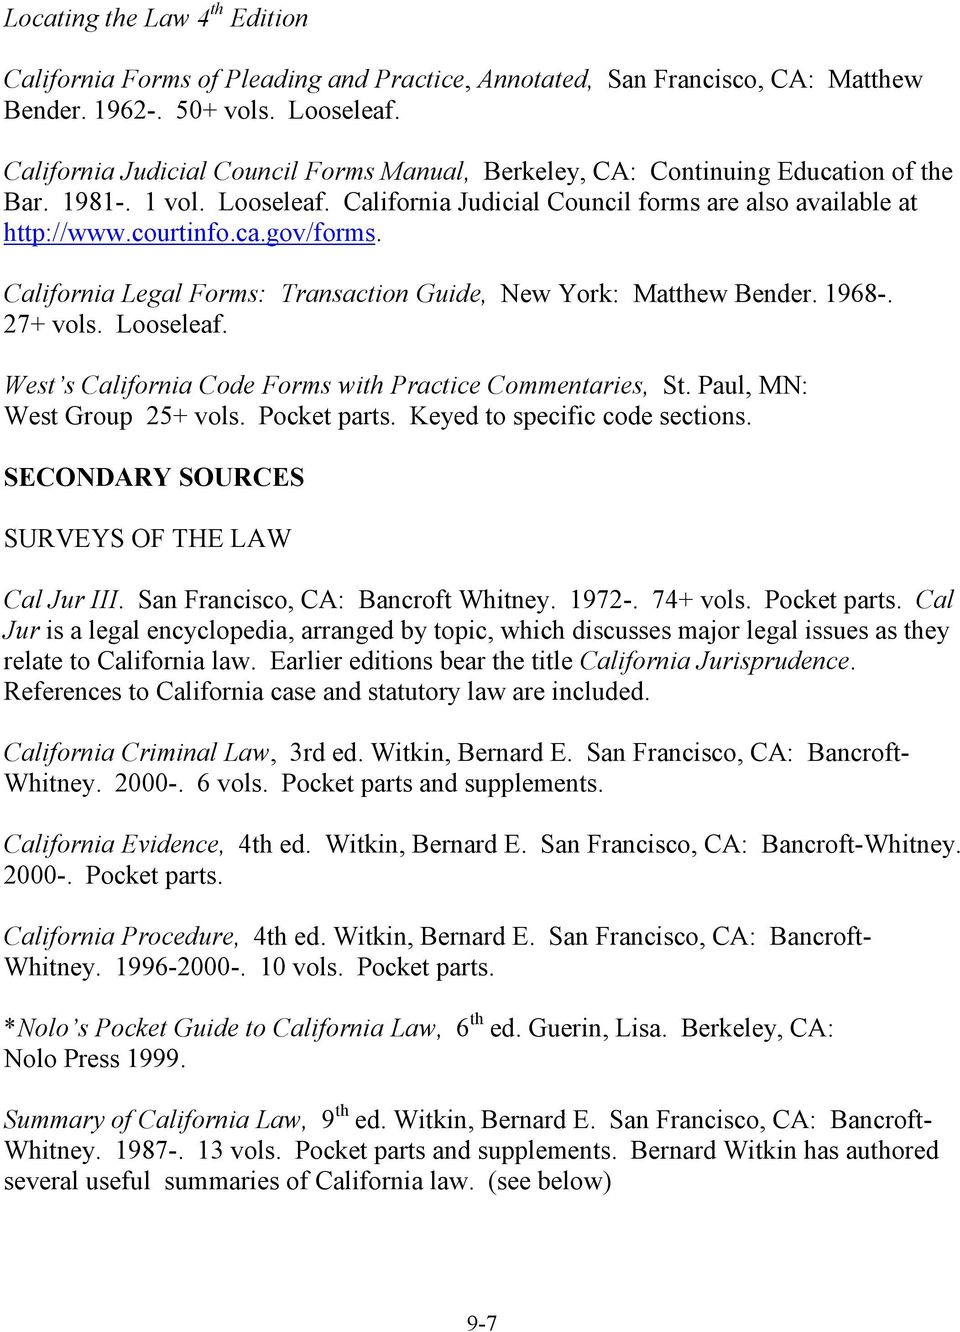 California Legal Forms: Transaction Guide, New York: Matthew Bender. 1968-. 27+ vols. Looseleaf. West s California Code Forms with Practice Commentaries, St. Paul, MN: West Group 25+ vols.